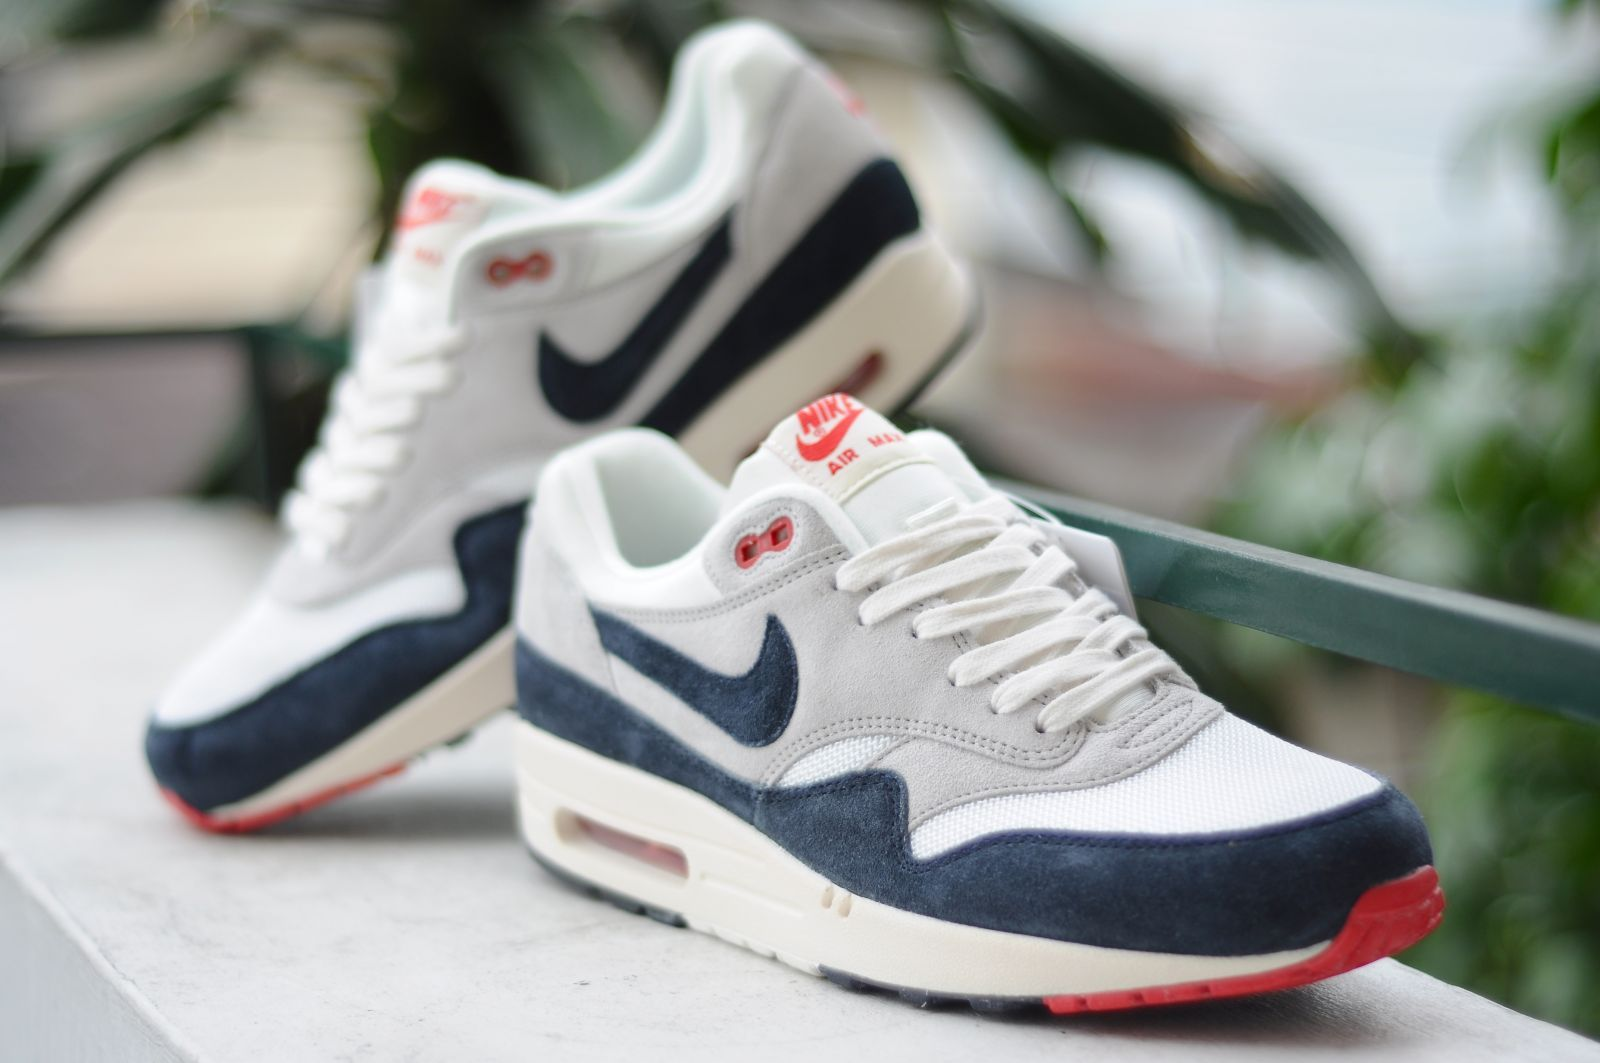 b03fe7e222 Nike Air Max 1 OG VNTG - White/Navy-Red | #airmax1 #nike #trainers #sneakers